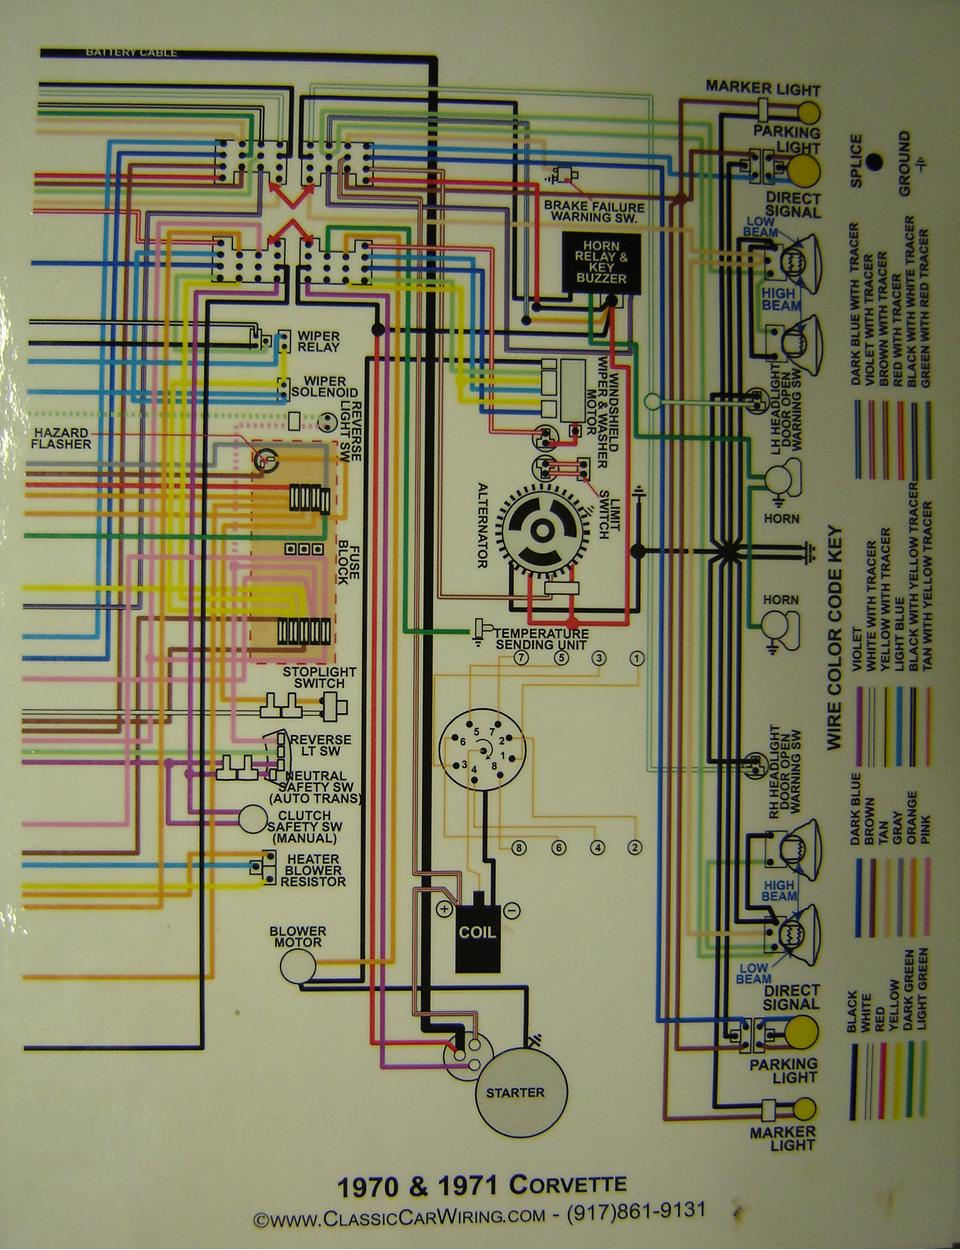 71 Gmc Wiring Diagram Schema Img 1983 Mercury Outboard Chevy Diagrams Alfa Romeo 1970 Corvette Color 2 Drawing B